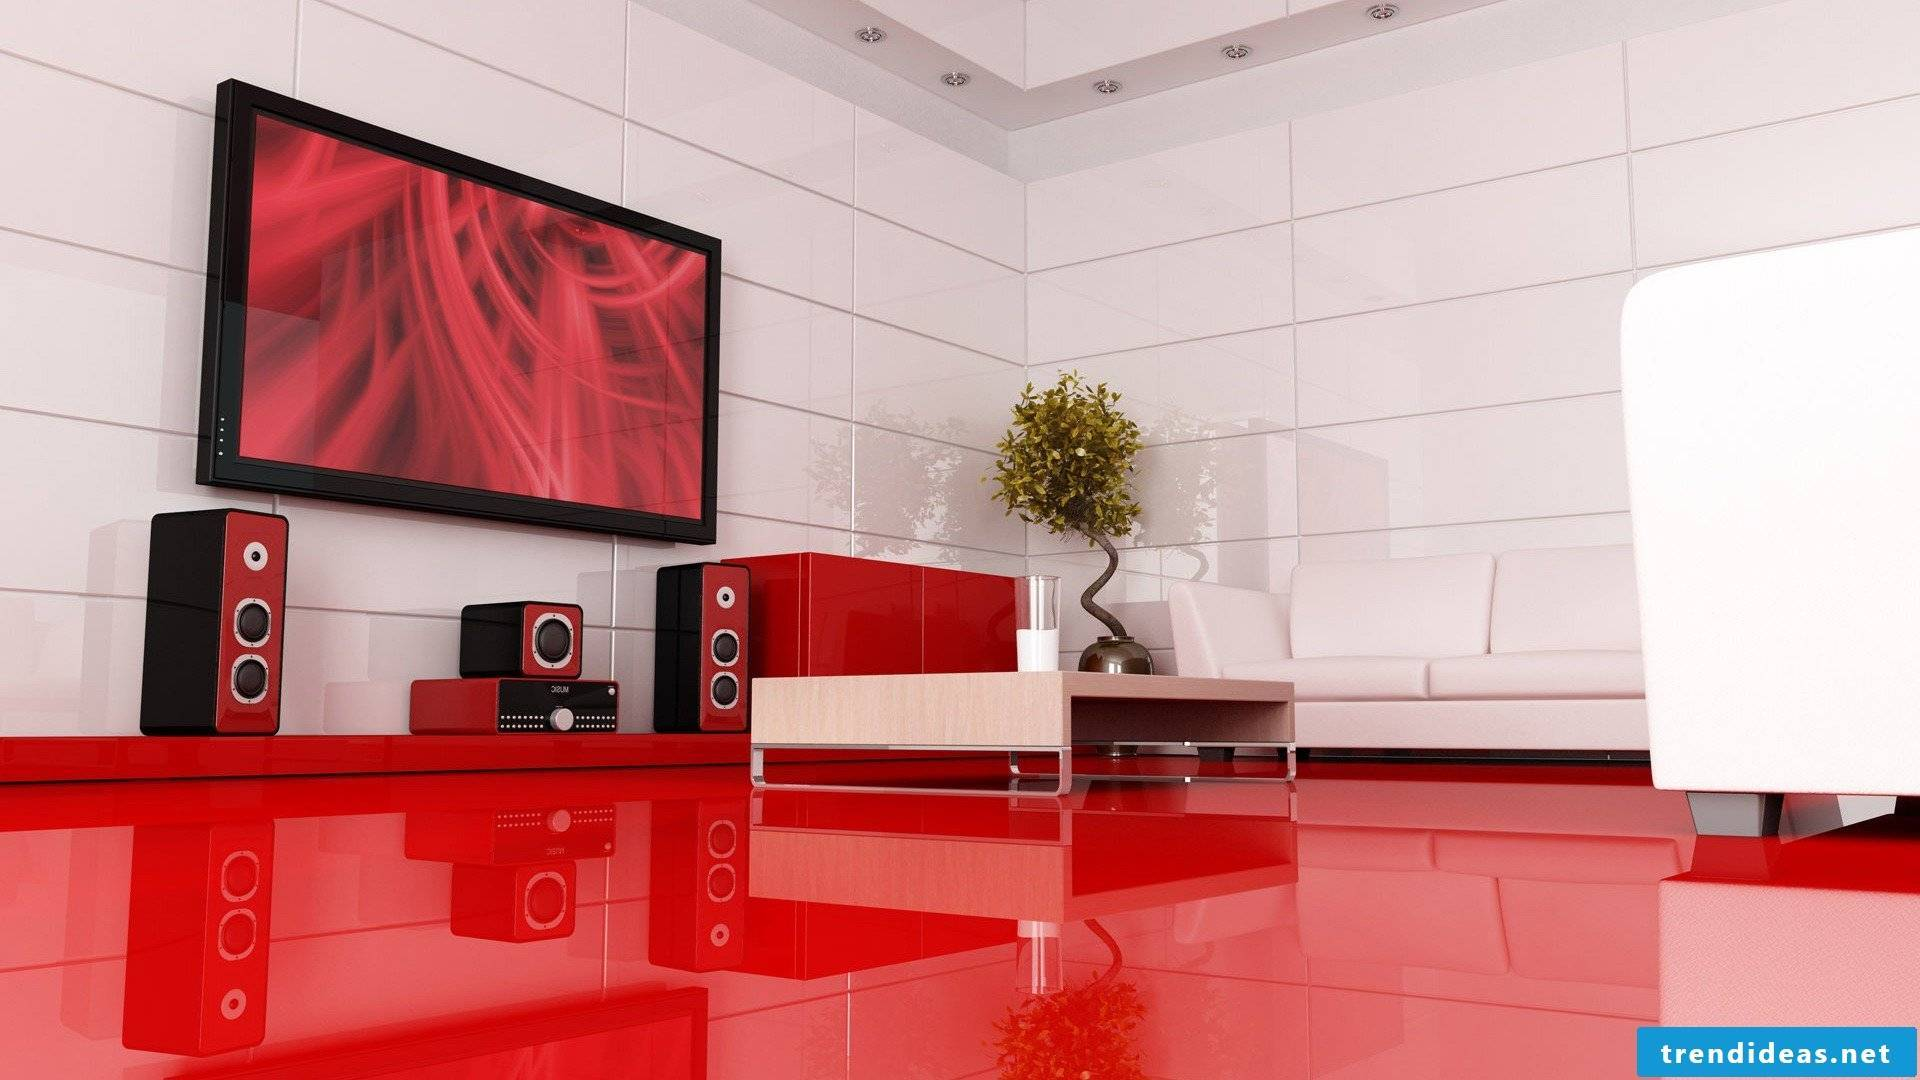 Meida furniture is suitable for every style of living!